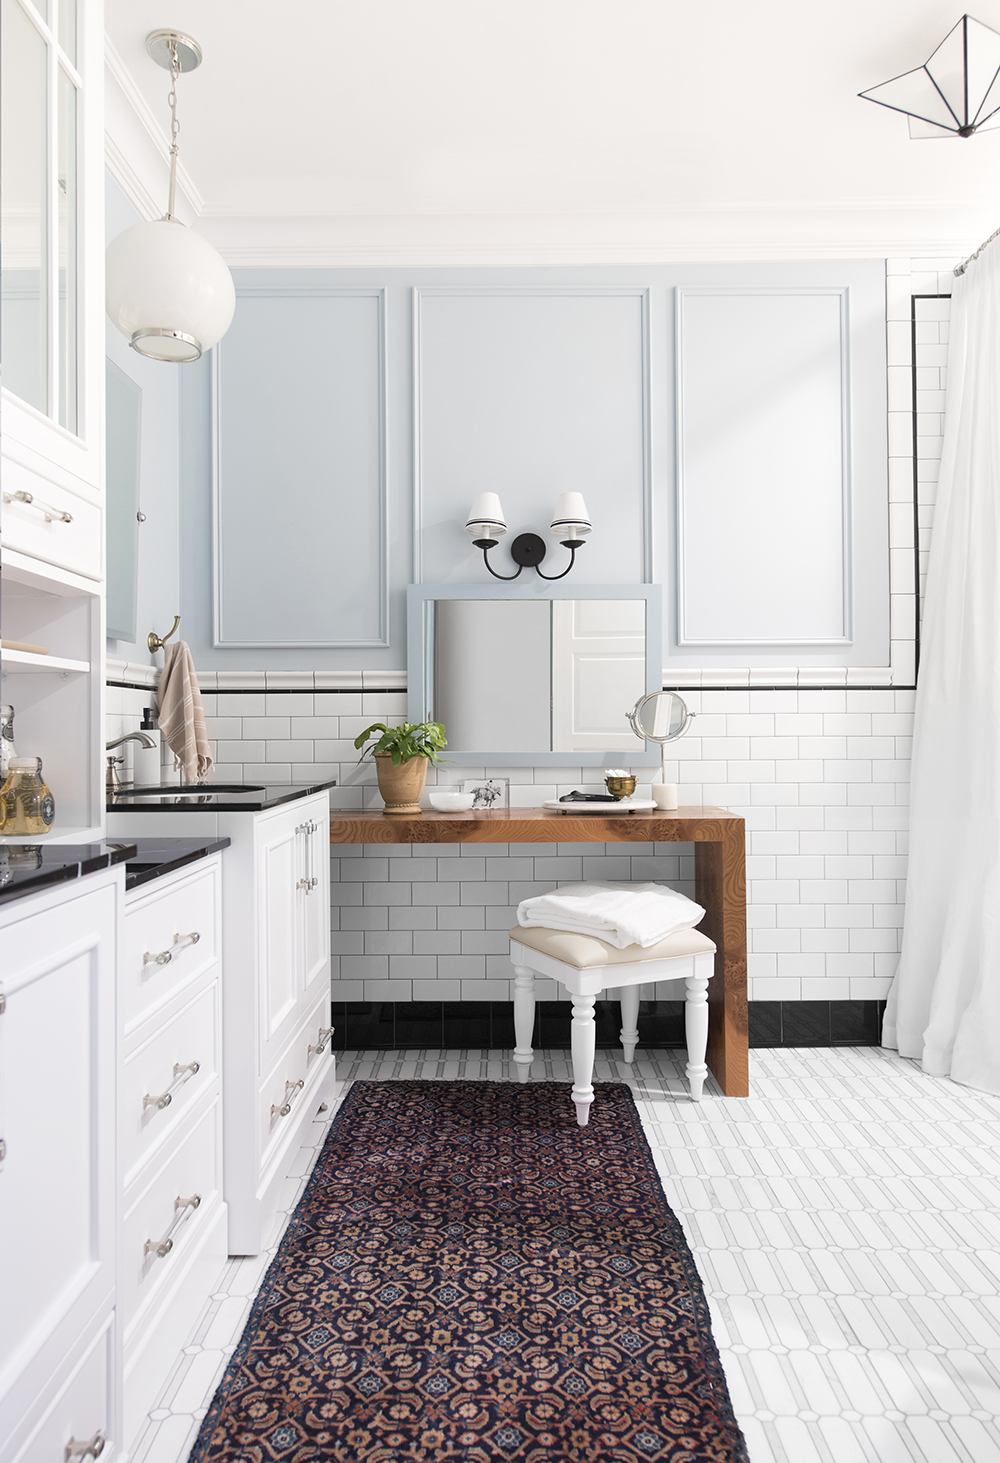 Design Discussion : Wool Rugs in the Bathroom - roomfortuesday.com